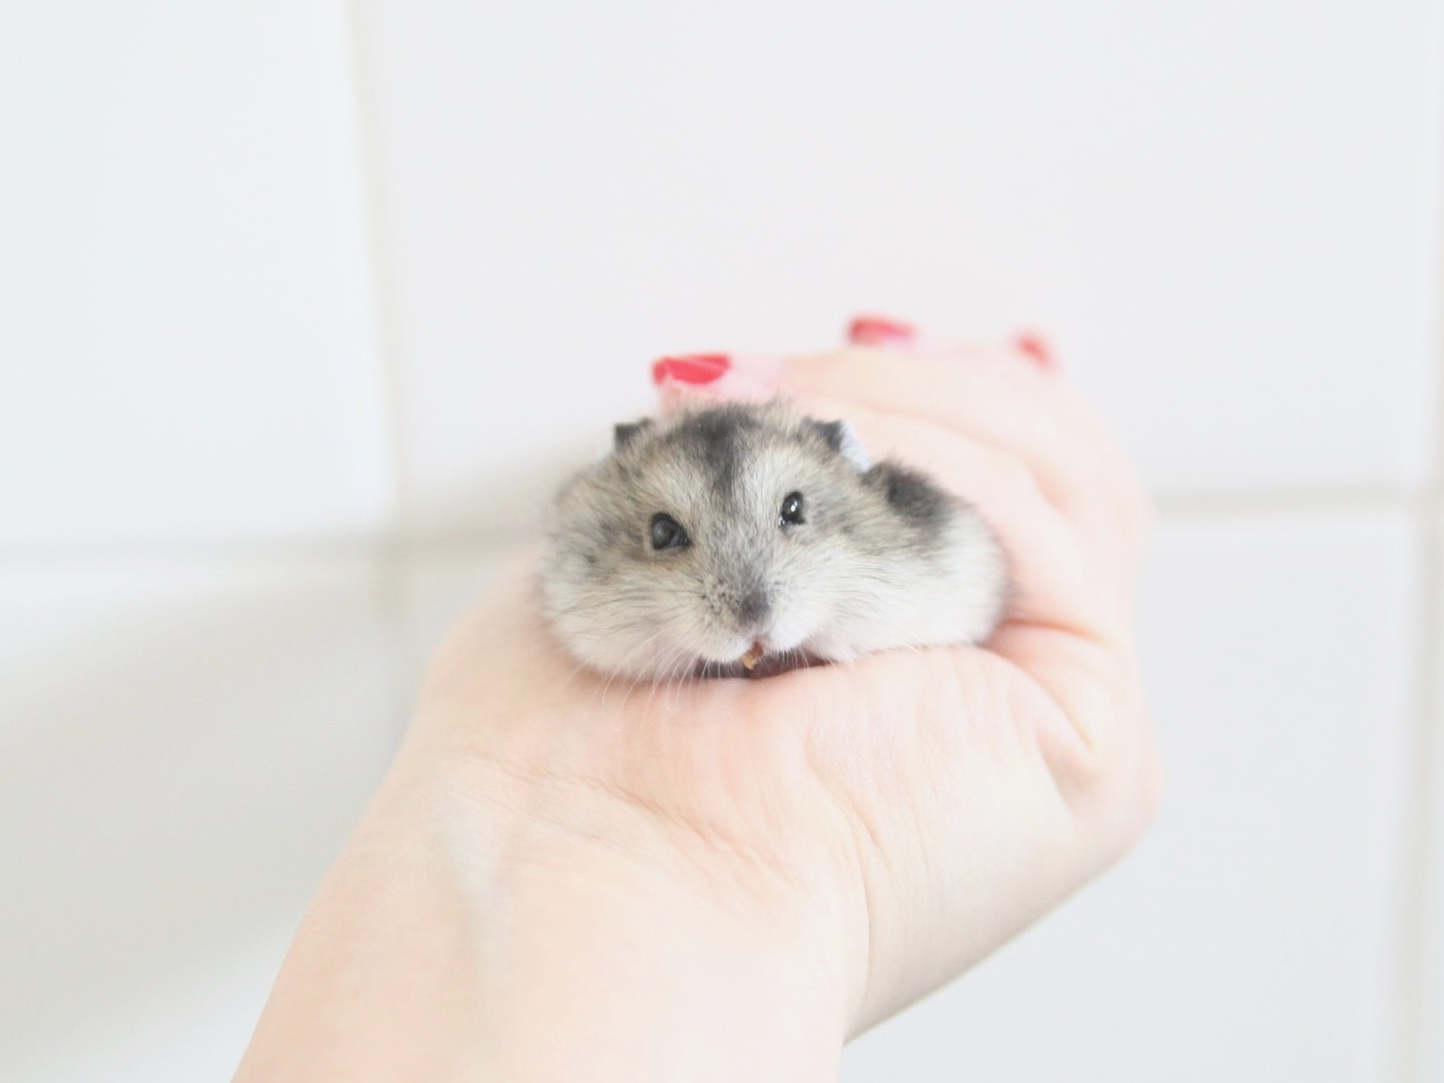 About - We are a volunteer-run organisation dedicated to the promotion of humane care of pet hamsters. We want to address the neglect, abuse and abandonment of one of the more neglected pet animals in Singapore.